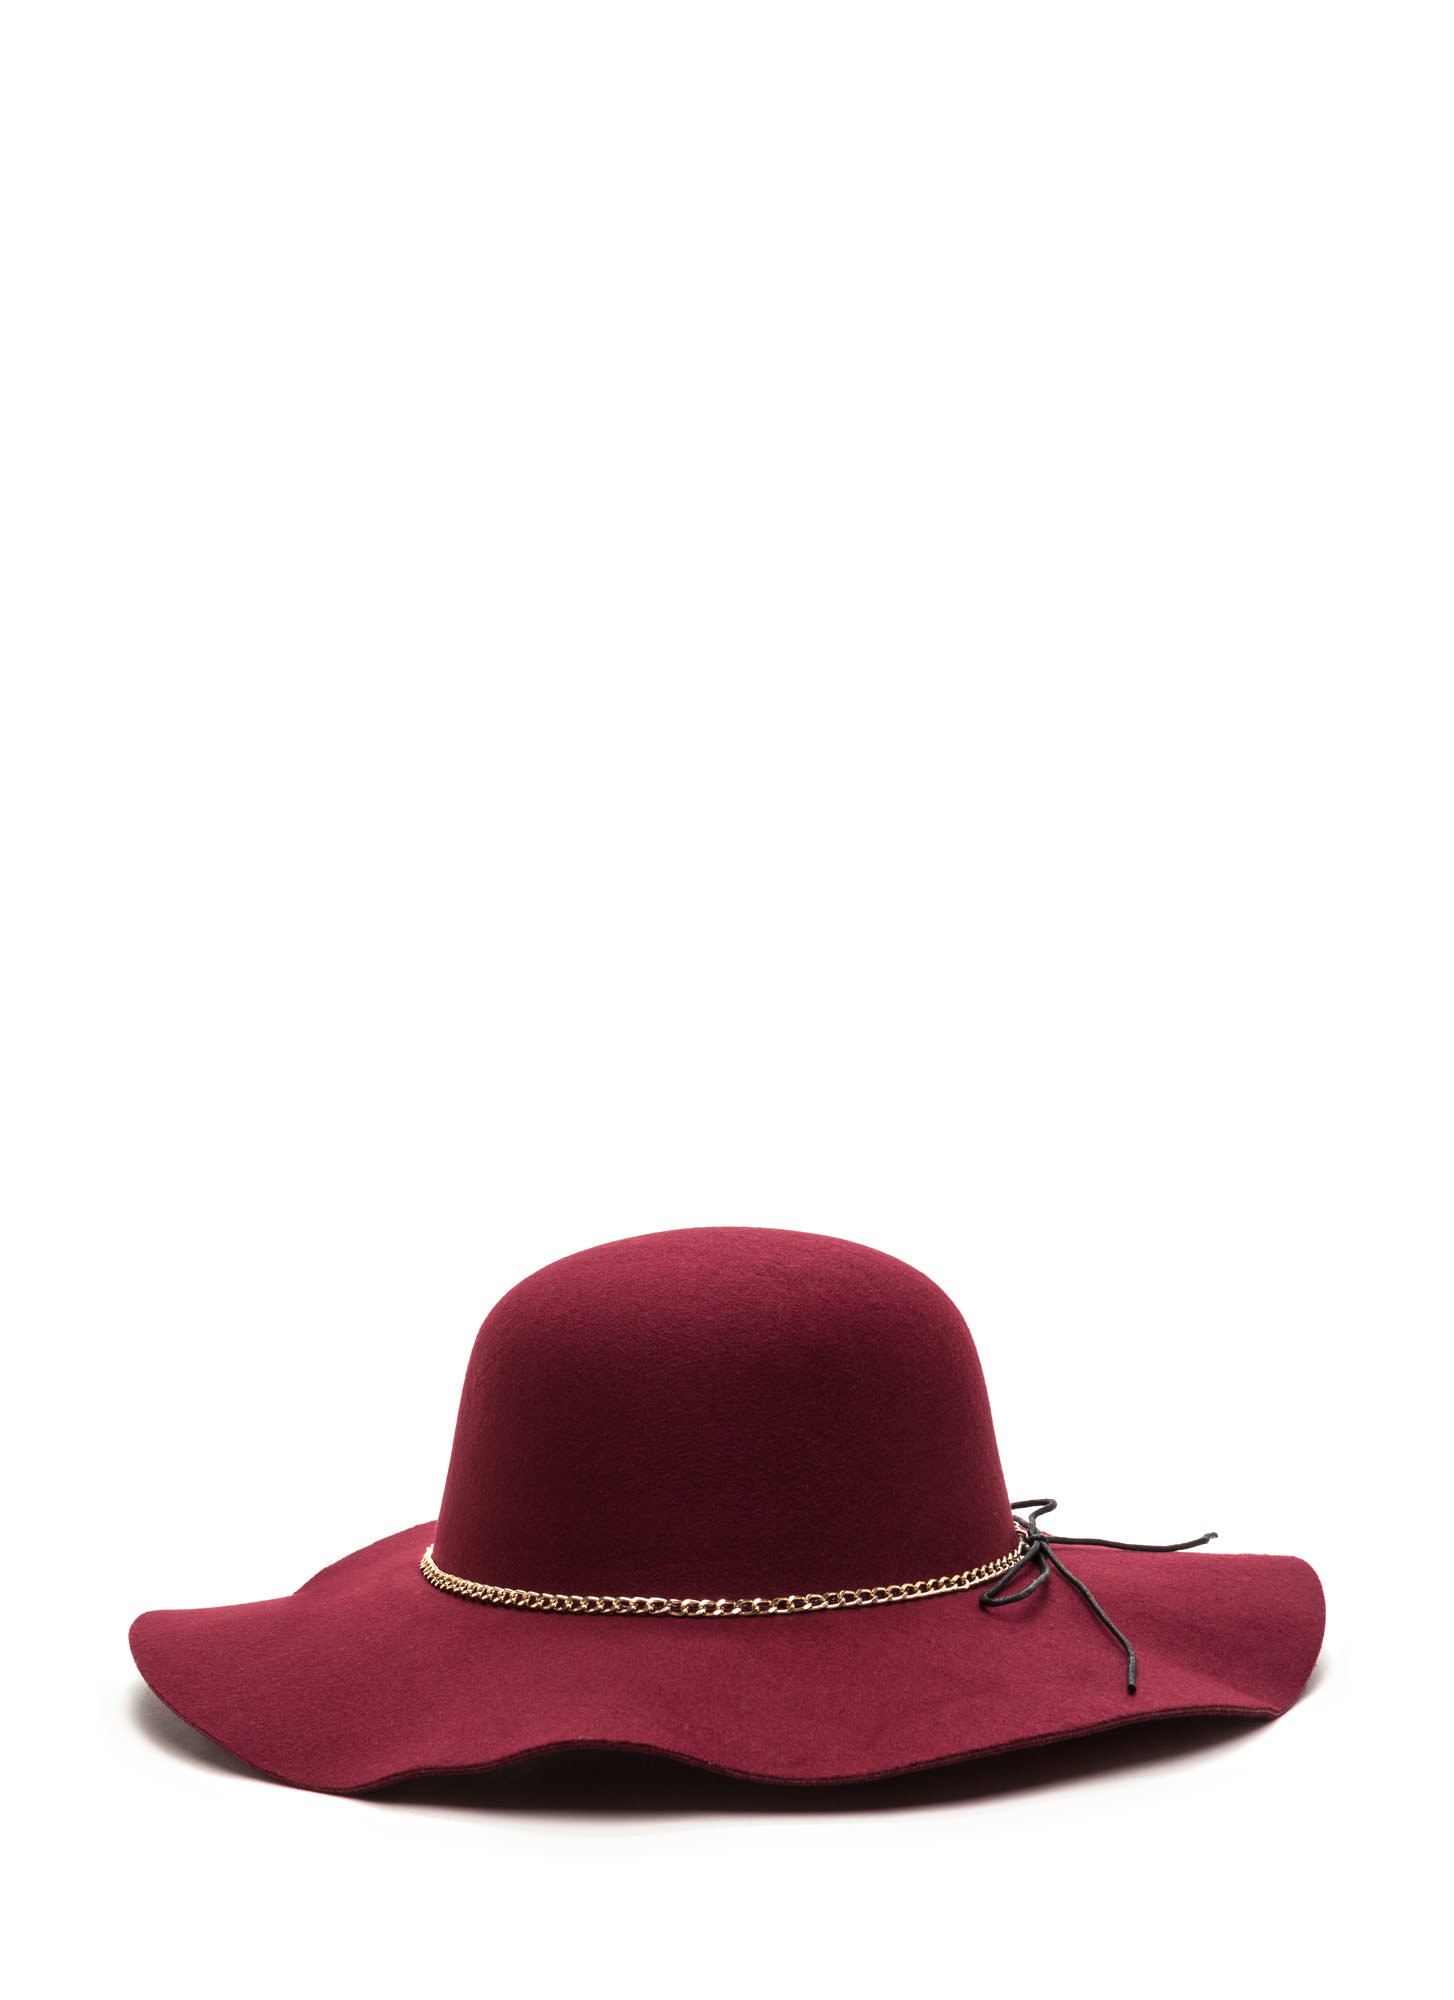 Bow And Chain Floppy Felted Hat BURGUNDY